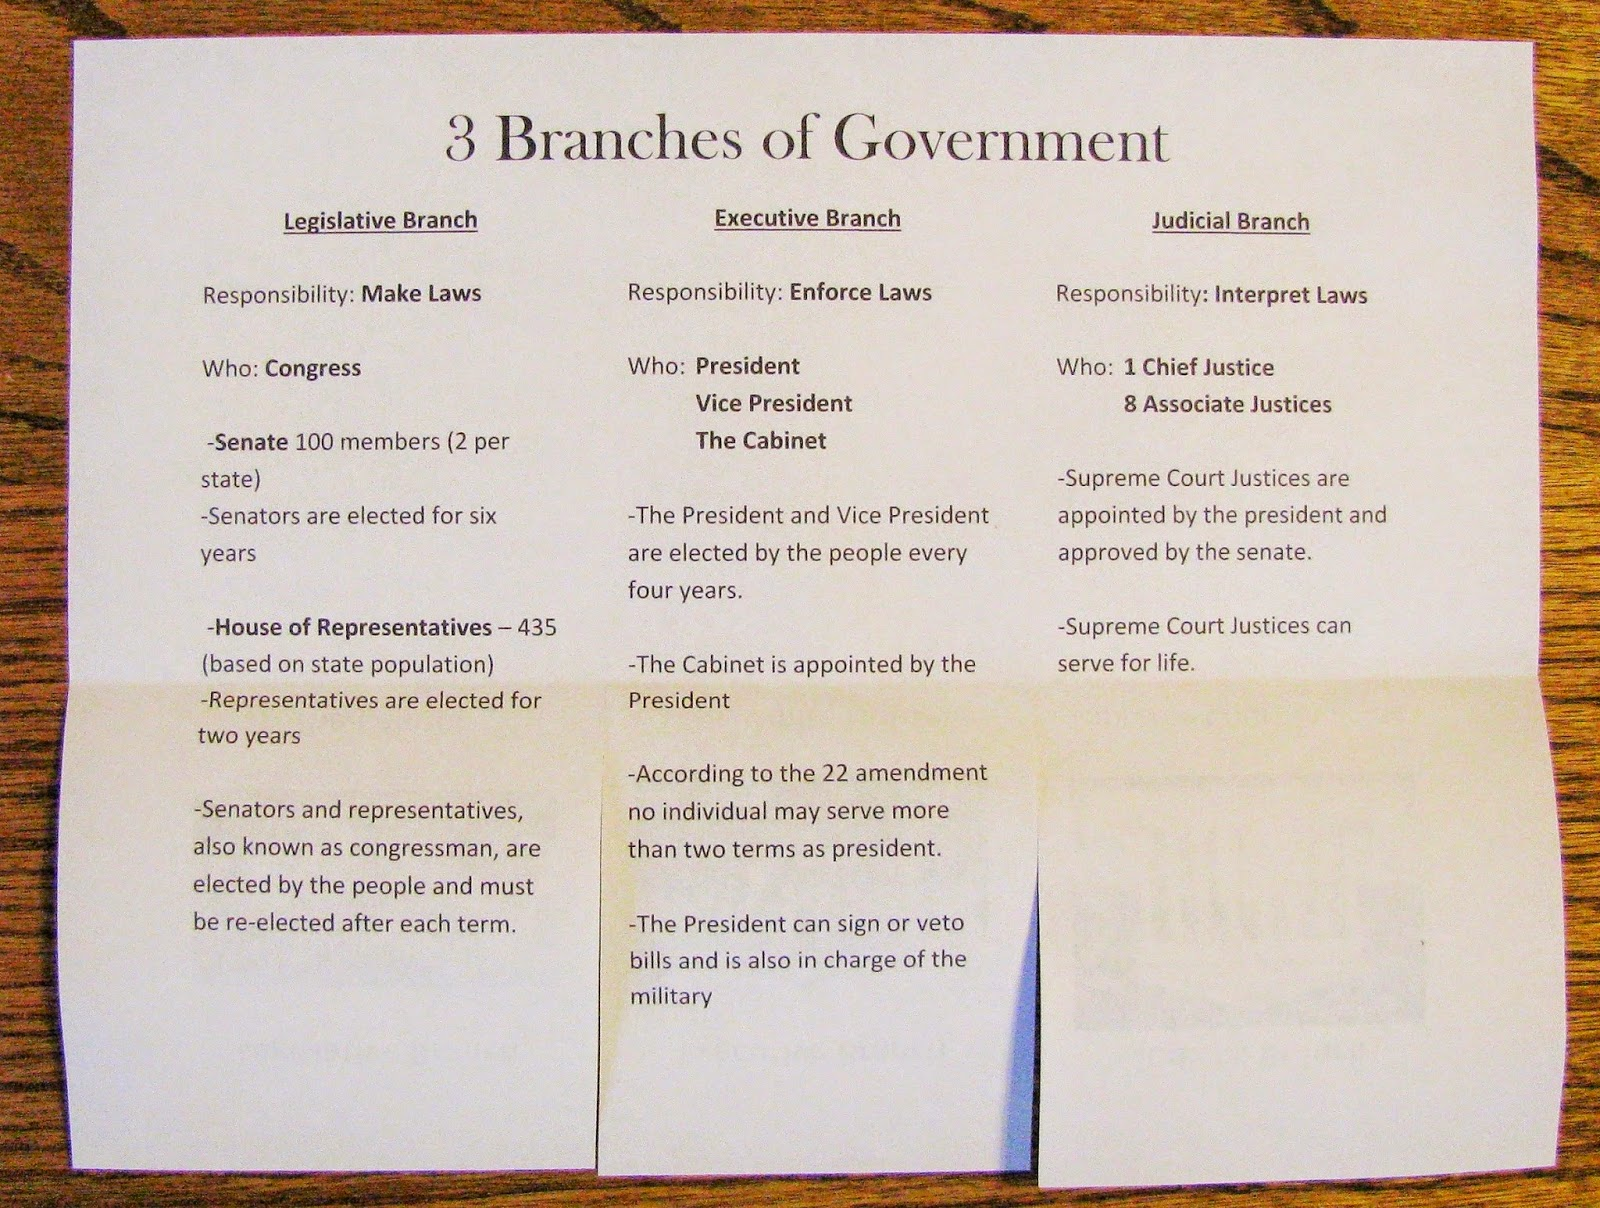 Learning Is The Game 3 Branches Of Government Study Guide